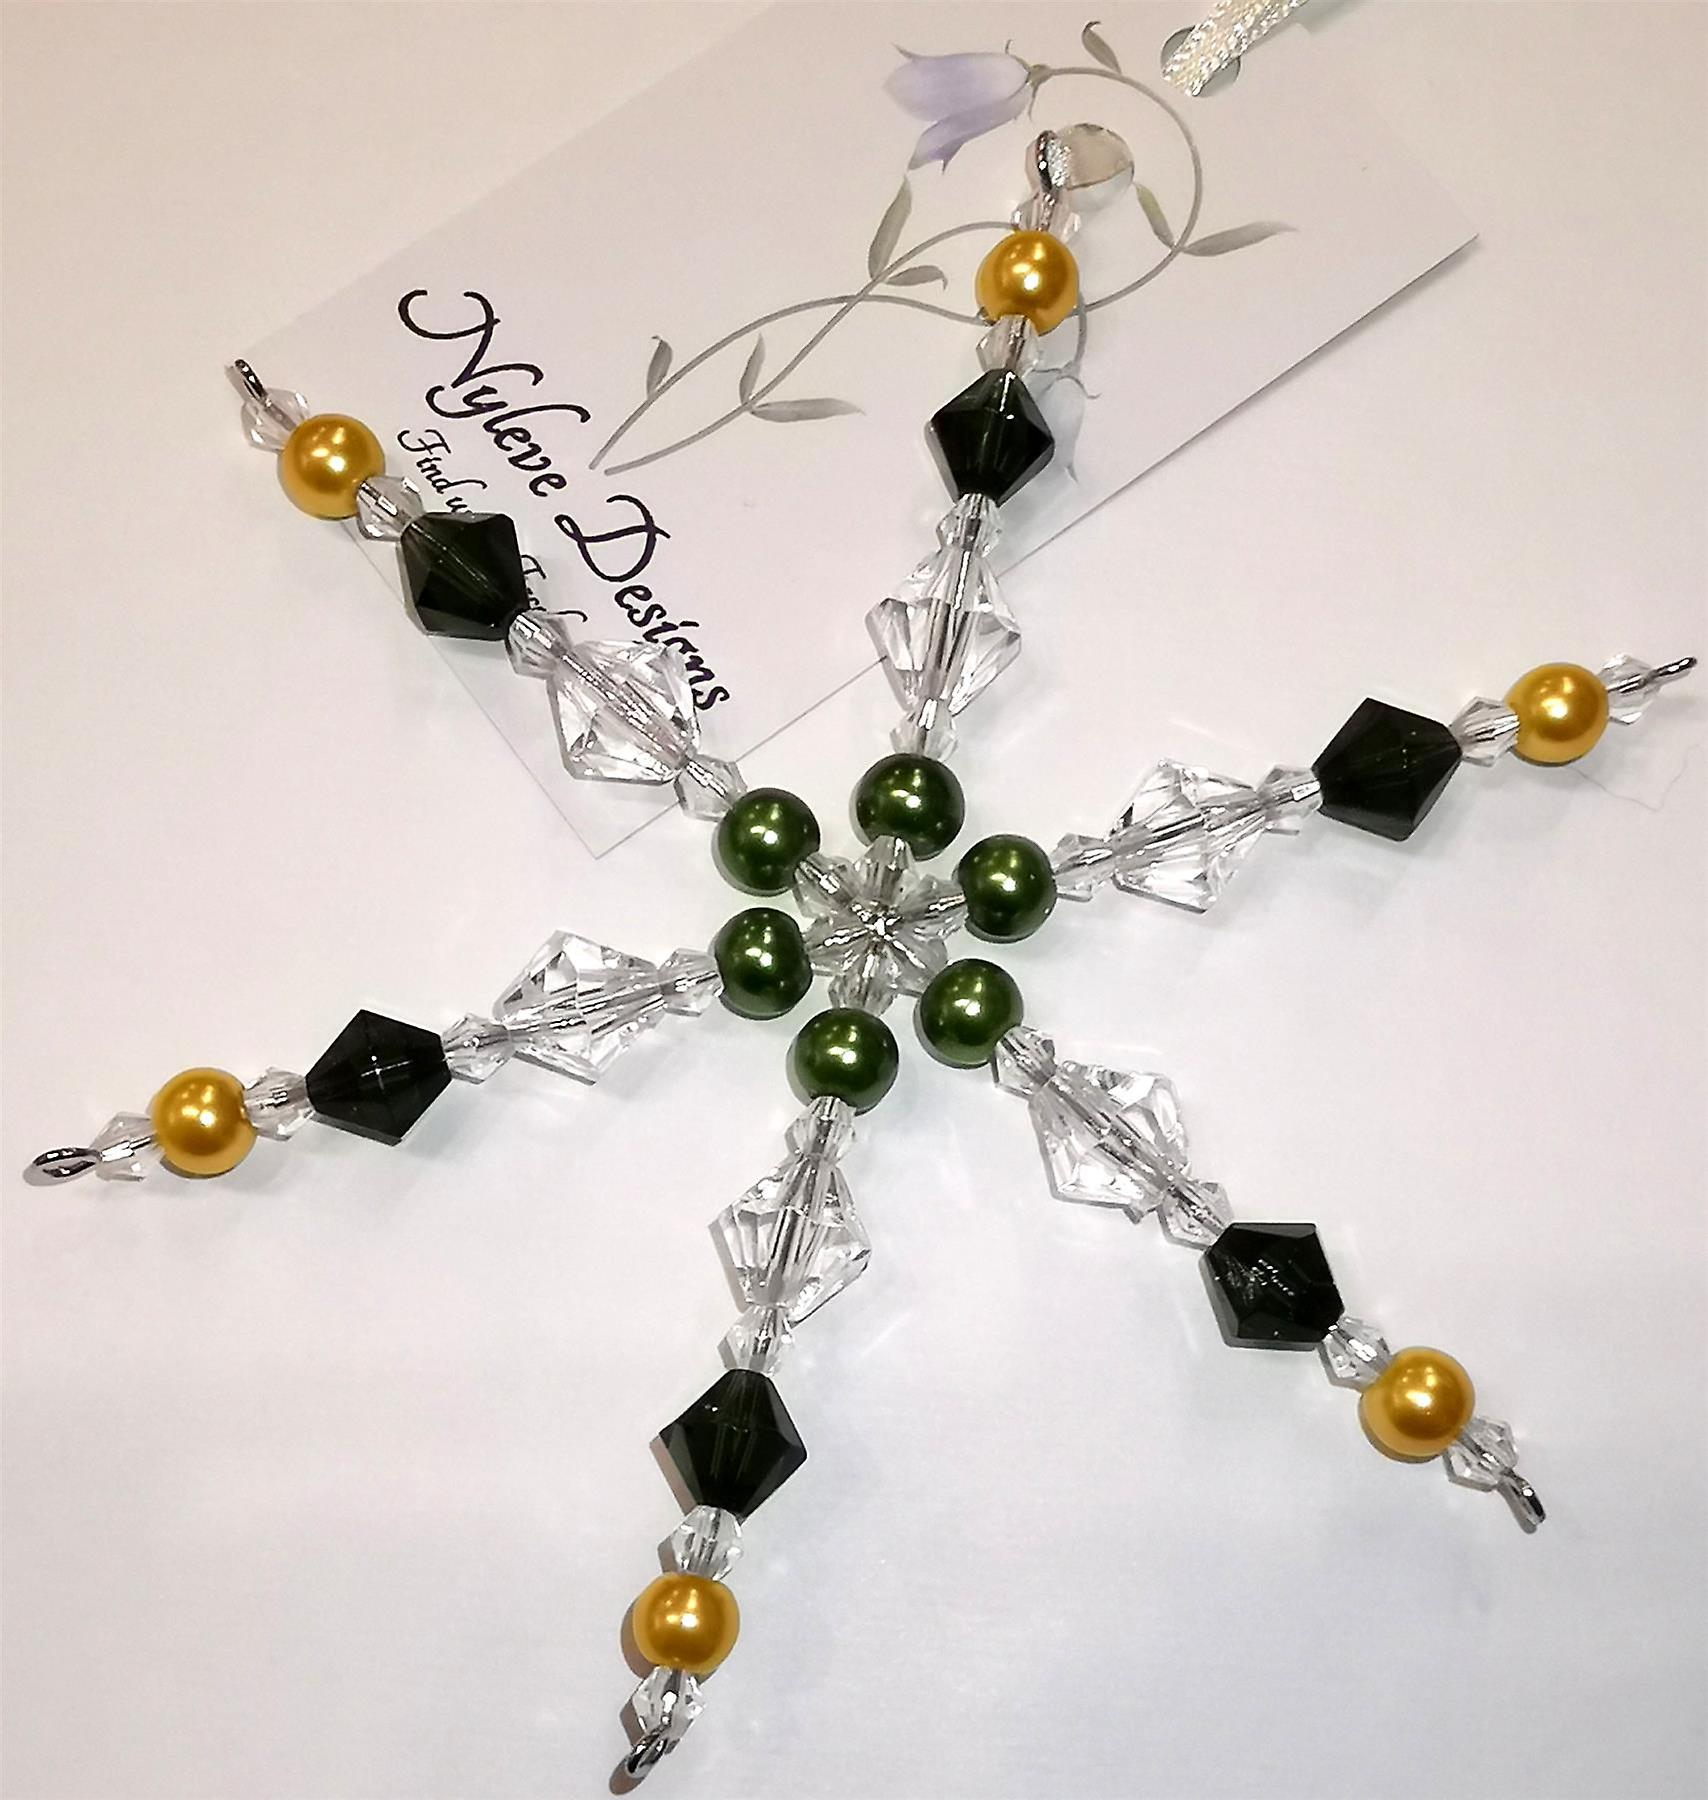 Nyleve Designs handmade hanging Snowflake decoration in Green, Gold